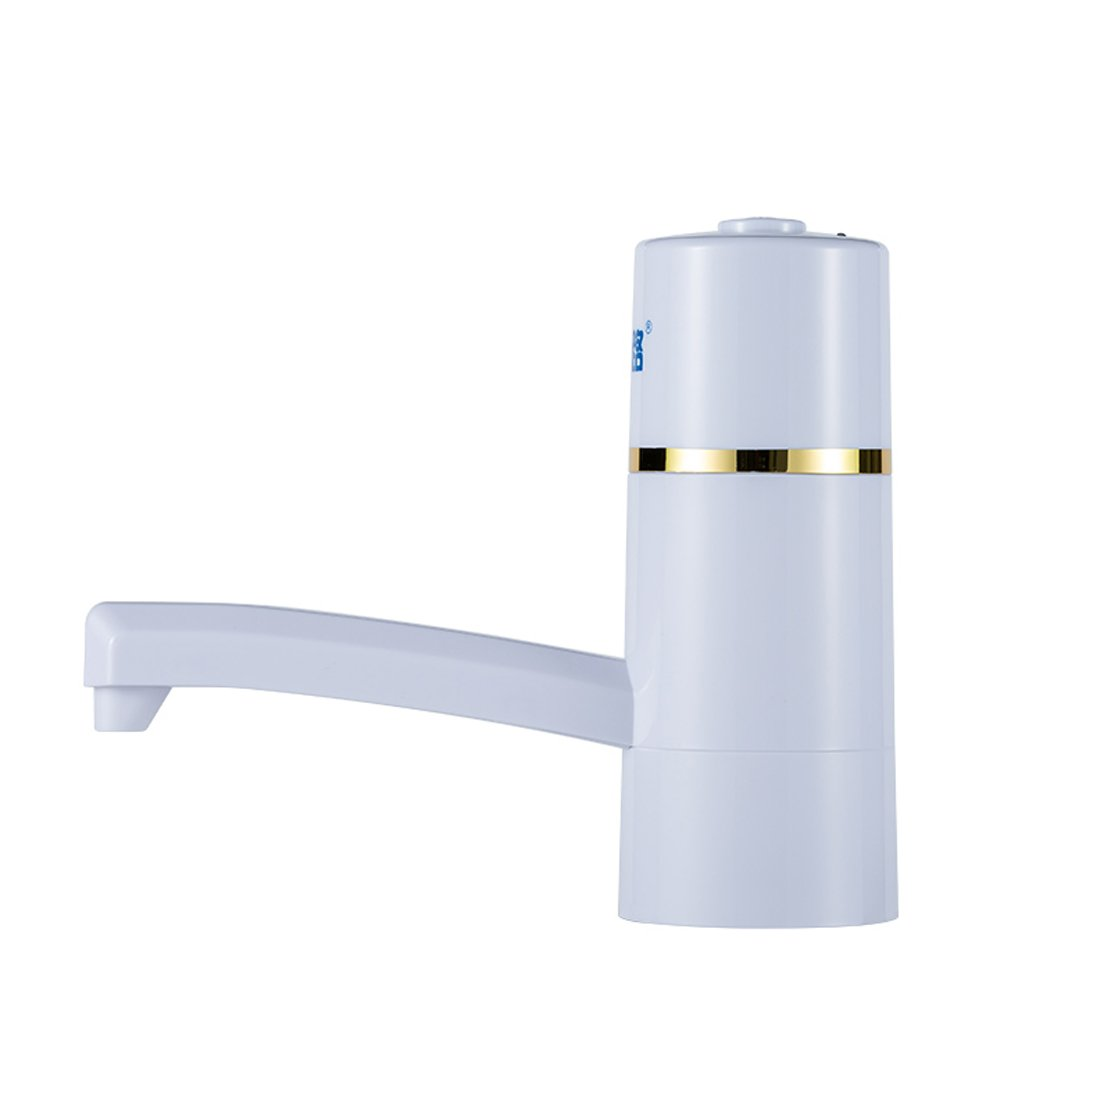 Morhua Wireless Auto Electric Gallon Bottled Drinking Water Pump Dispenser Switch, Automatic Electric Water Drinking Portable Button Pump Dispenser Gallon Bottle Switch 5W and 12V (White)